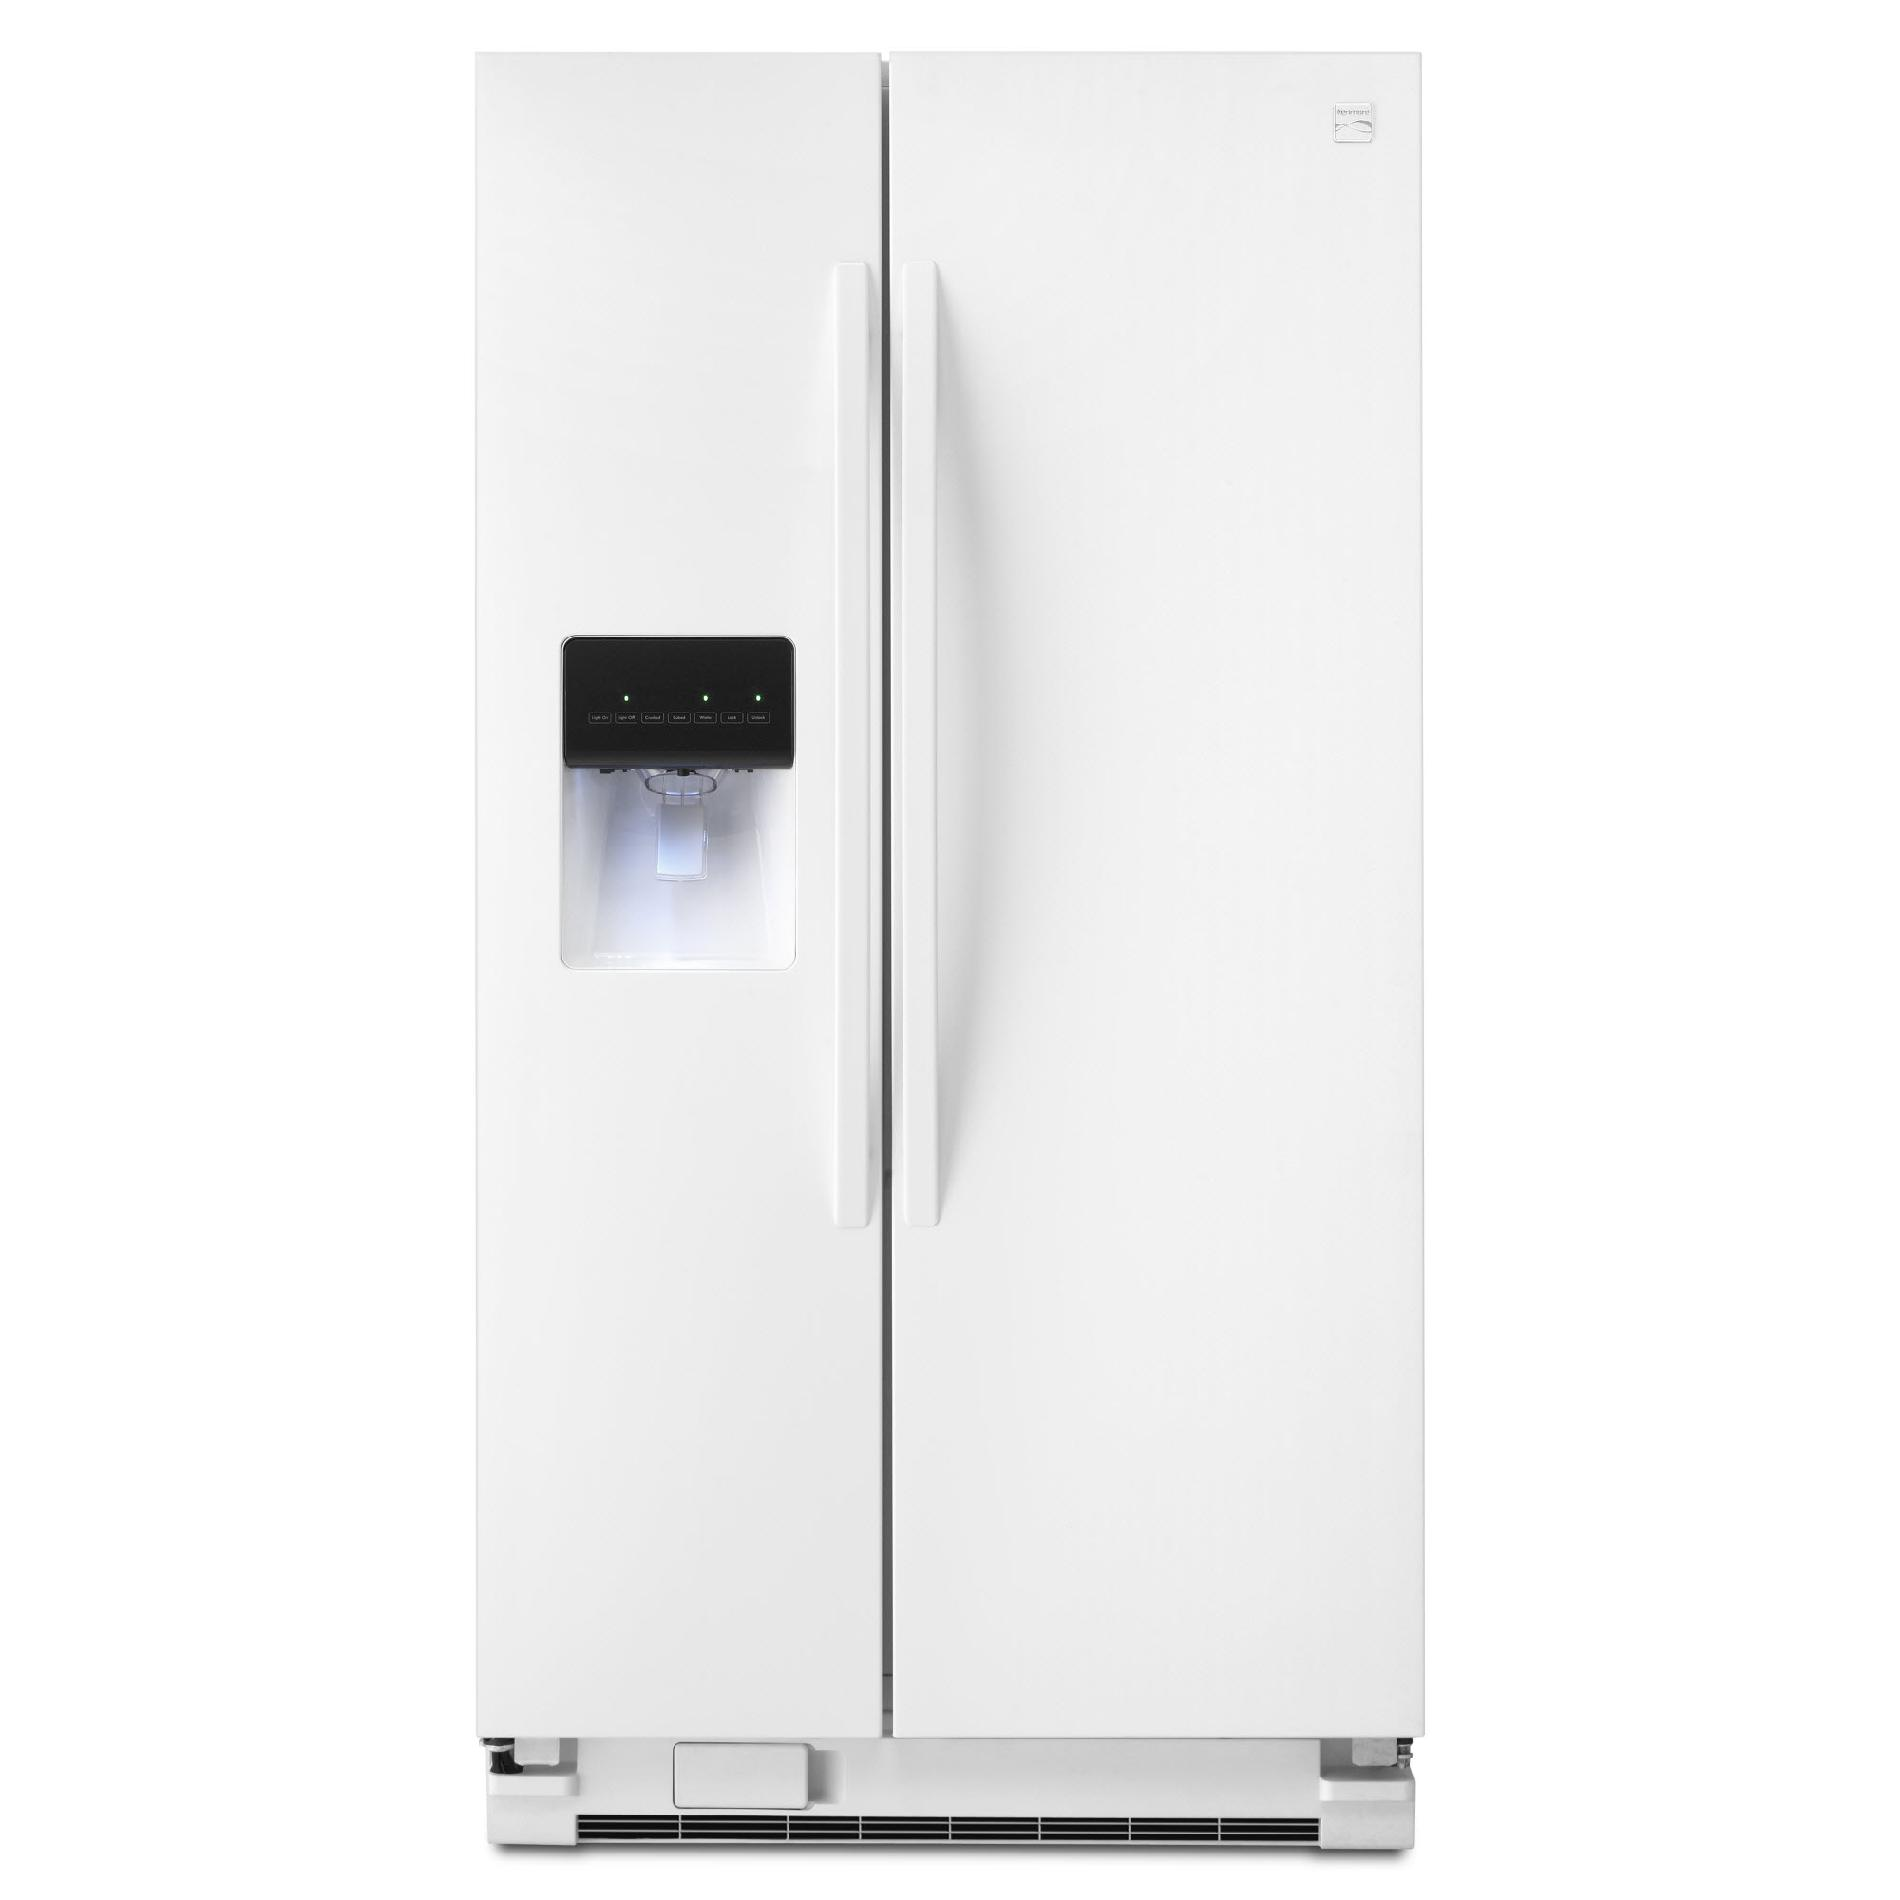 Sears has the best selection of Kenmore Refrigerators in stock. Get the Kenmore Refrigerators you want from the brands you love today at Sears. Get the Kenmore Refrigerators you want from the brands you love today at Sears.